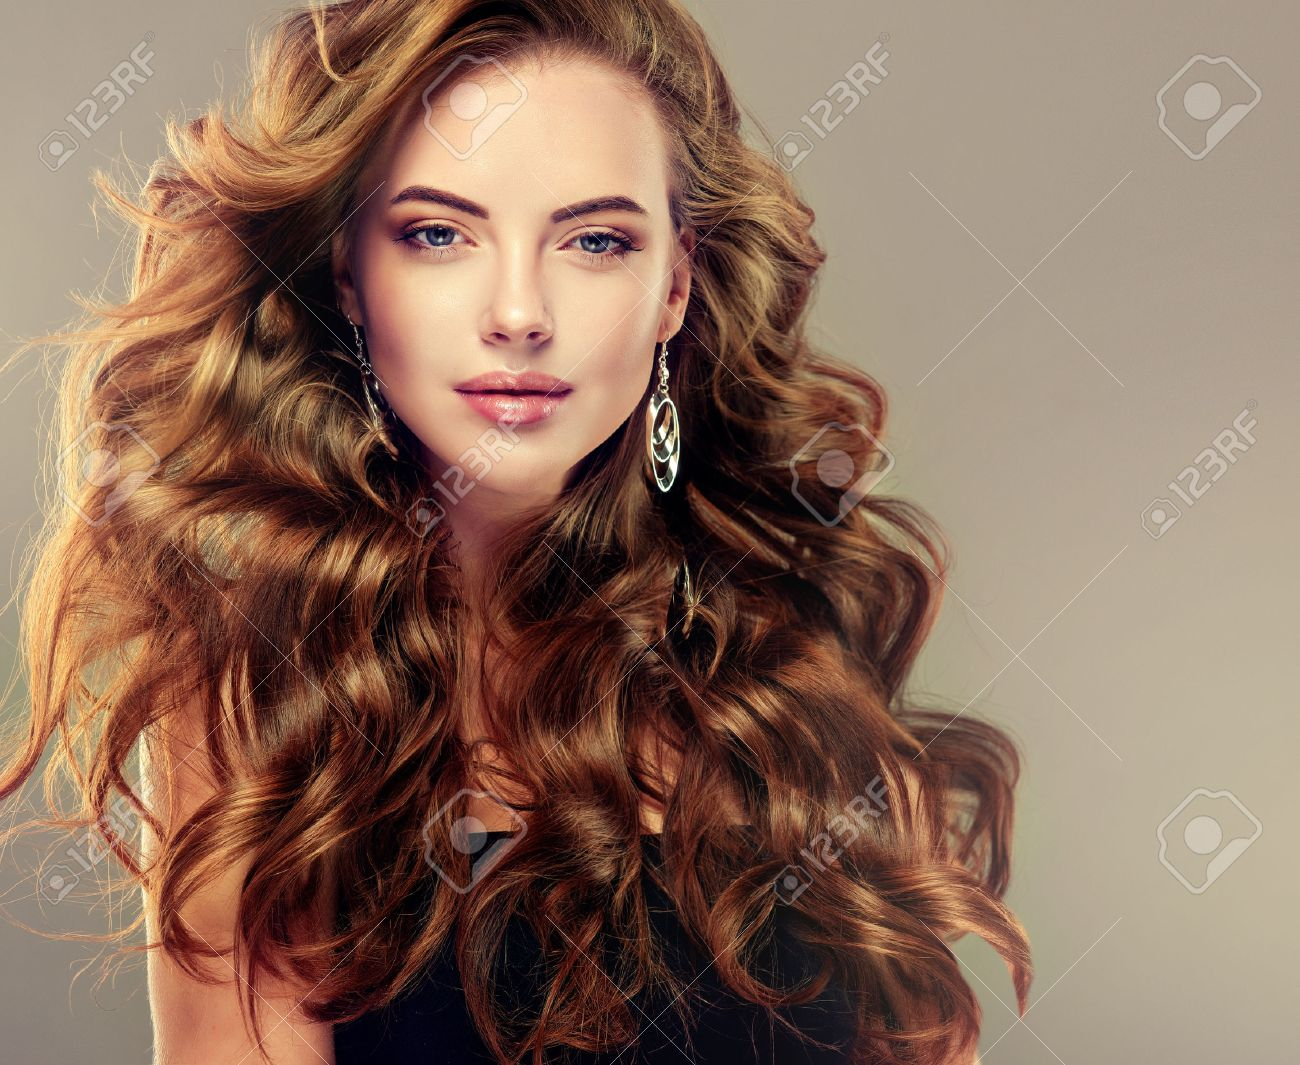 Groovy Beautiful Girl With Long Wavy Hair Brunette Model With Curly Hairstyle Inspiration Daily Dogsangcom